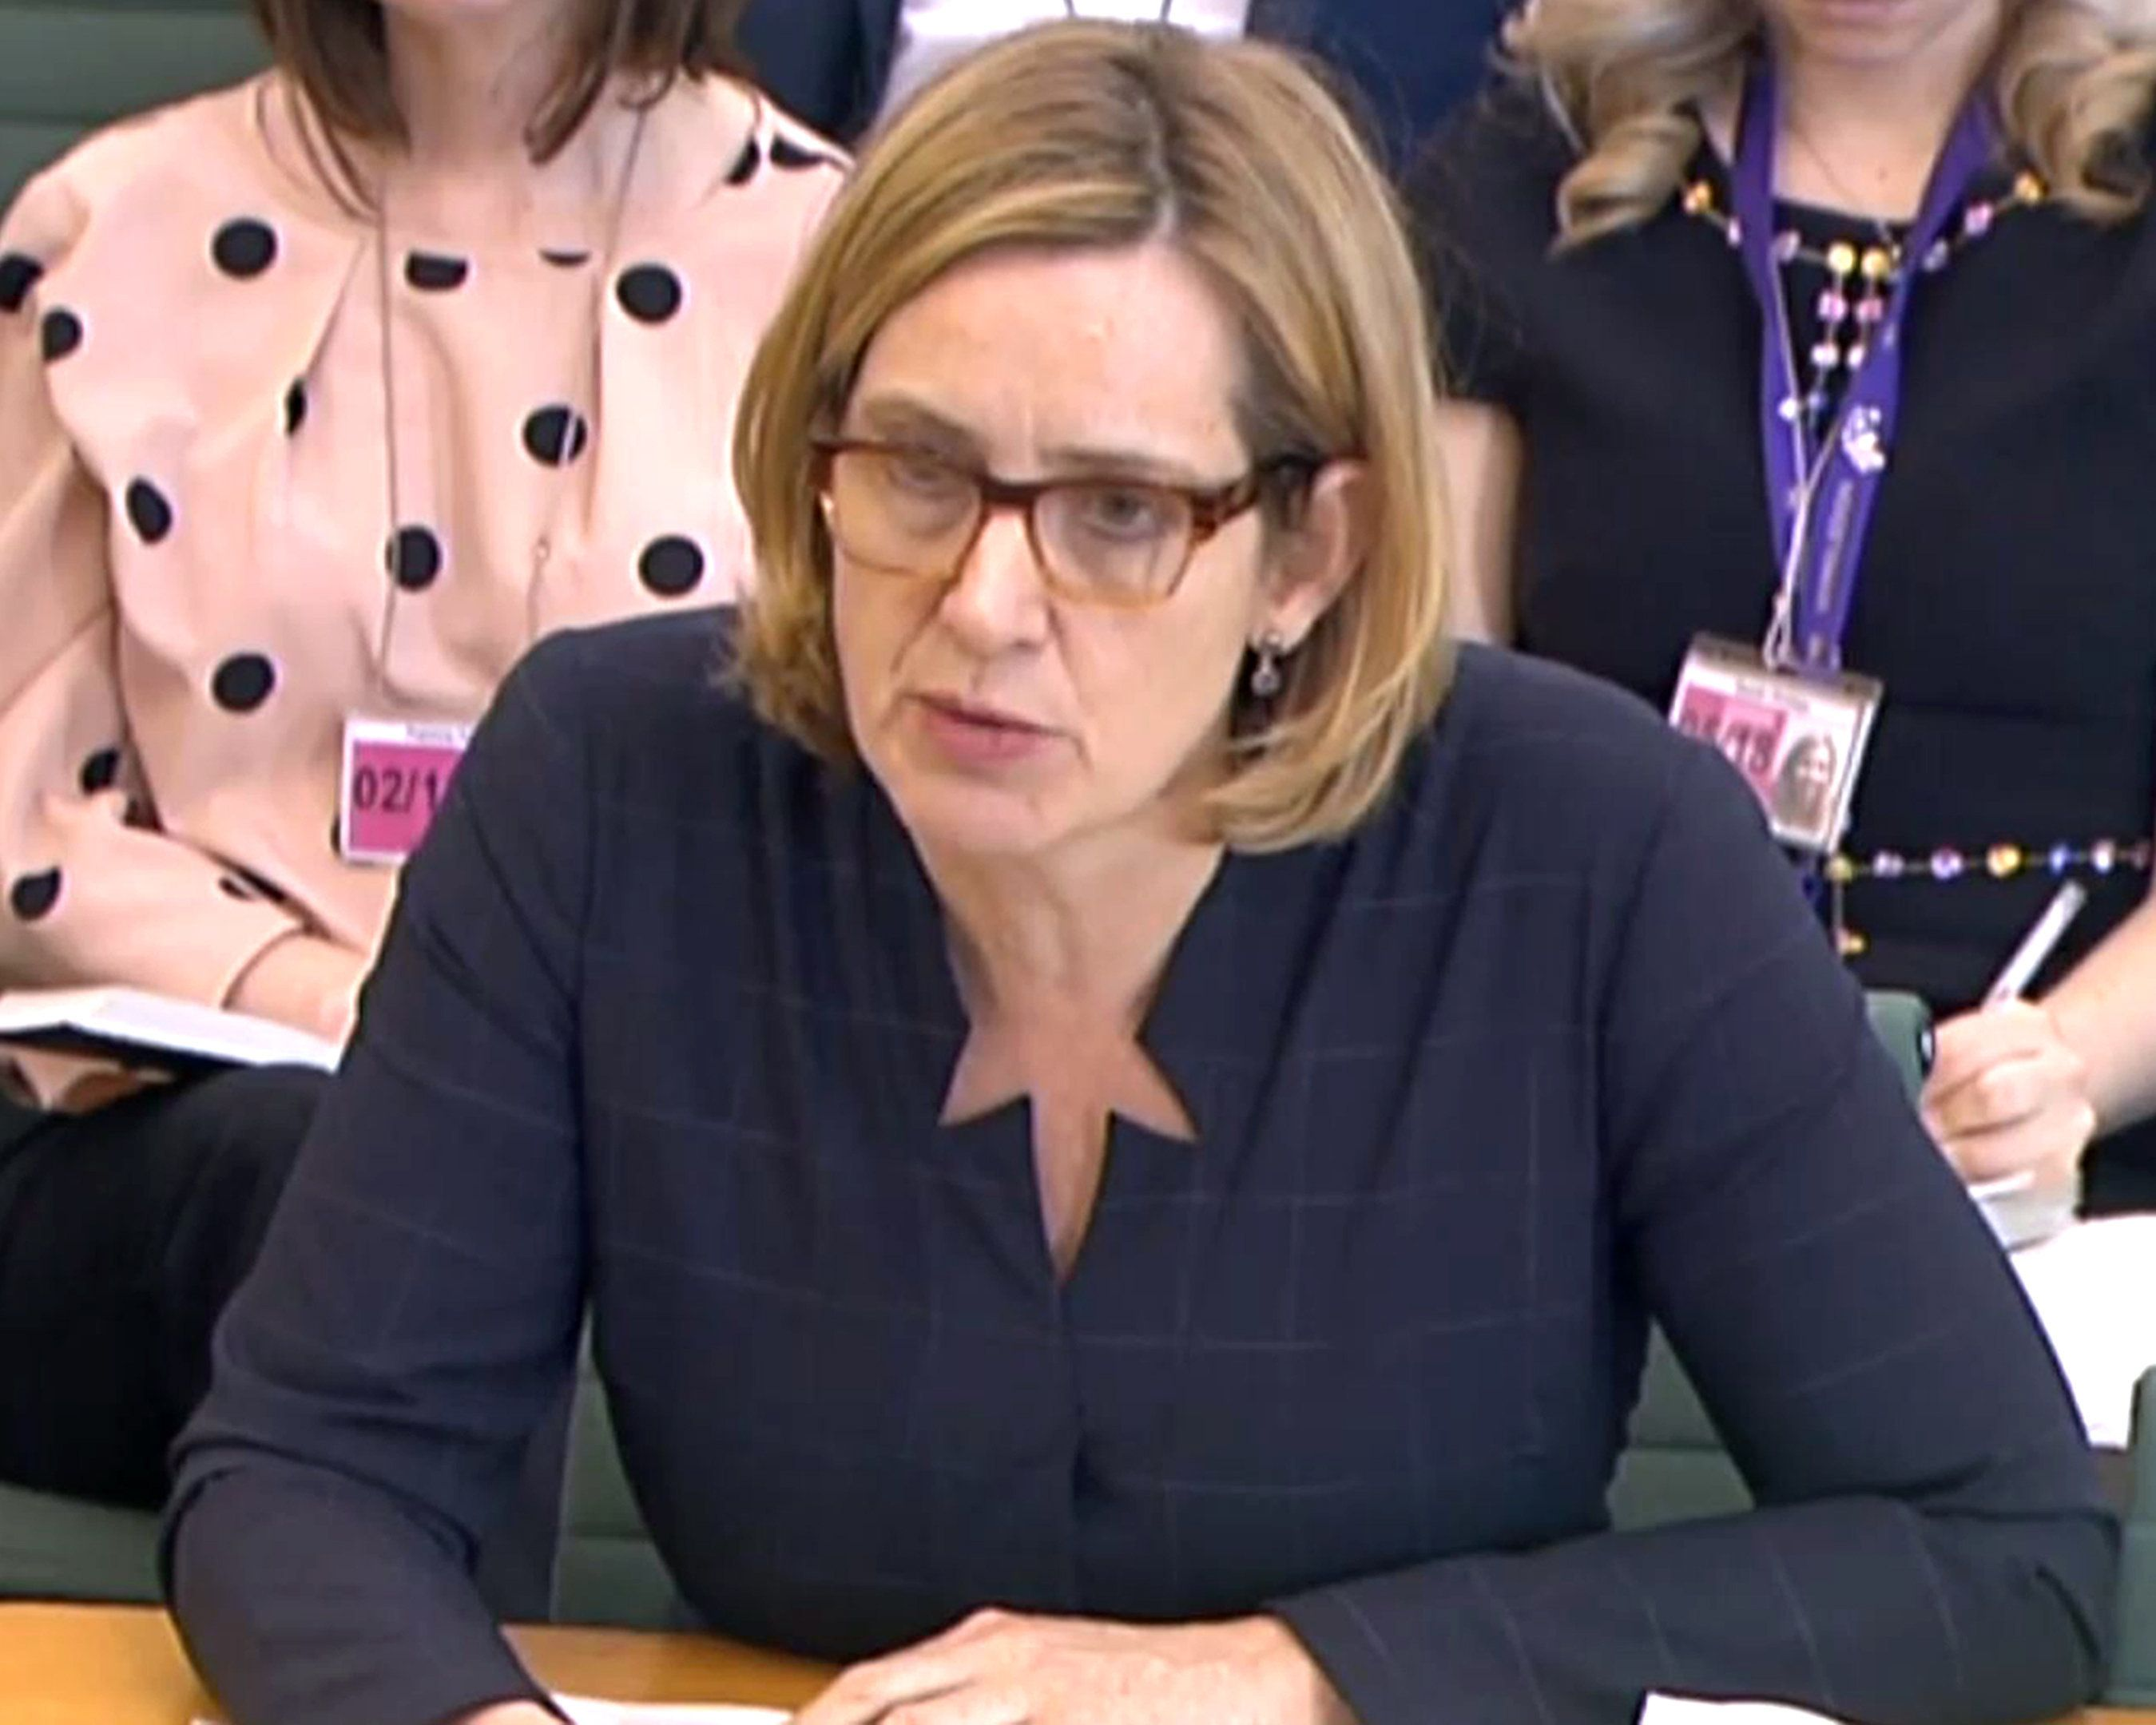 Amber Rudd Said There Were No Immigration Removal Targets But A 2015 Report Says